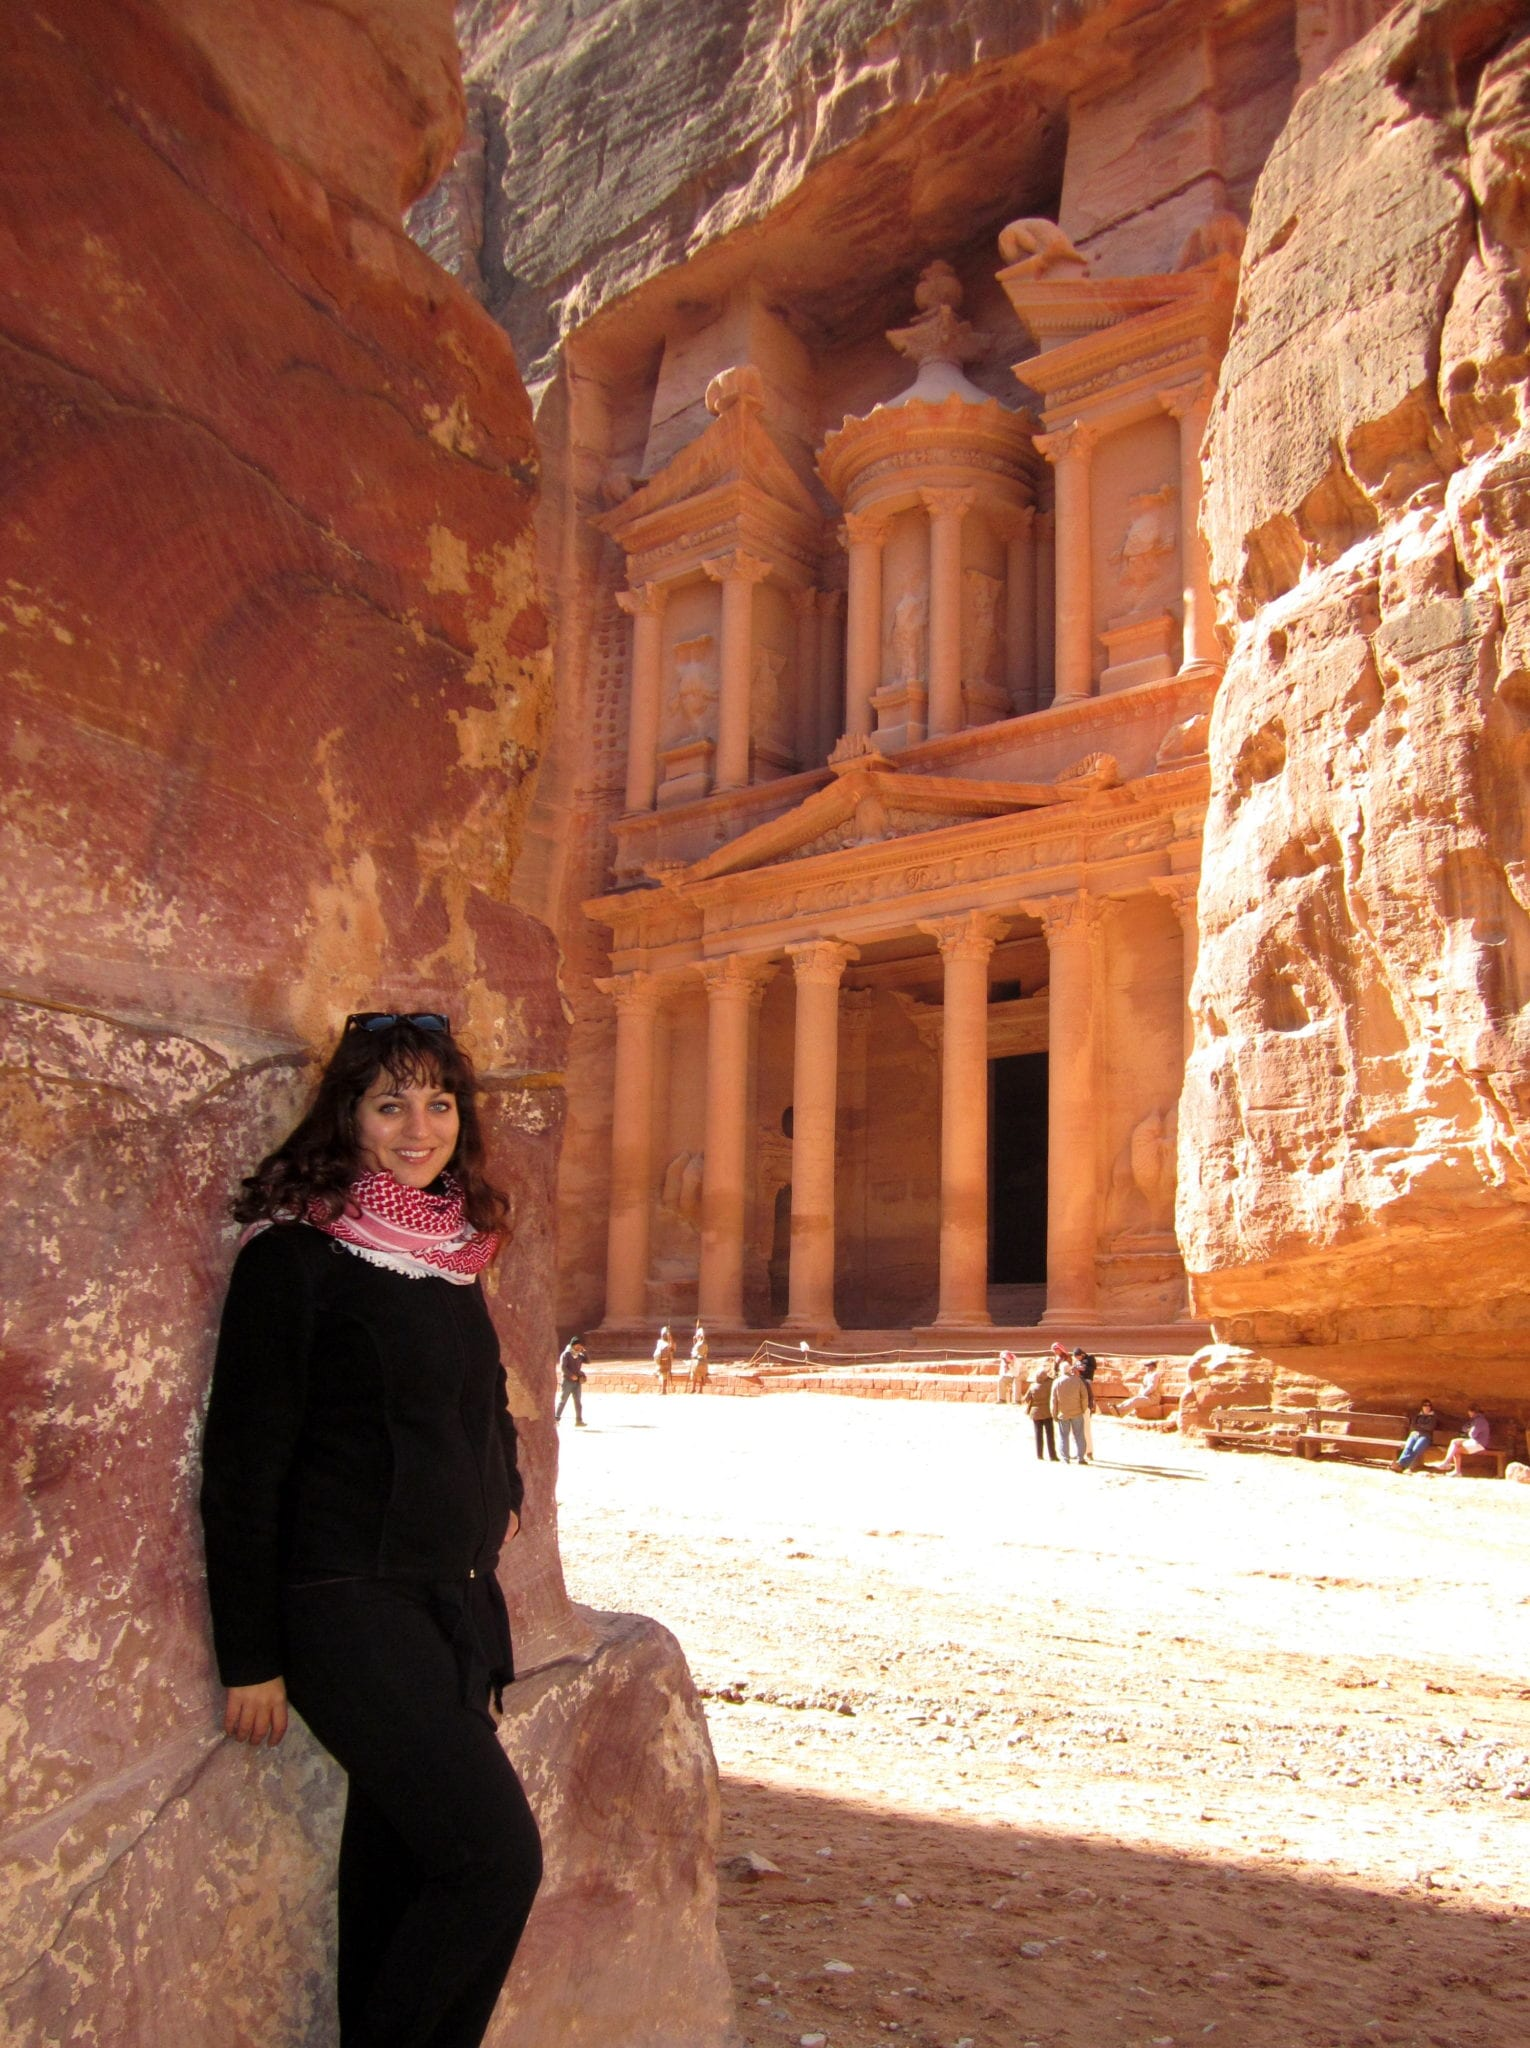 2b3c1718d443a In Petra, I wore my fleece over a t-shirt, yoga pants, and hiking boots —  and added an awesome scarf.